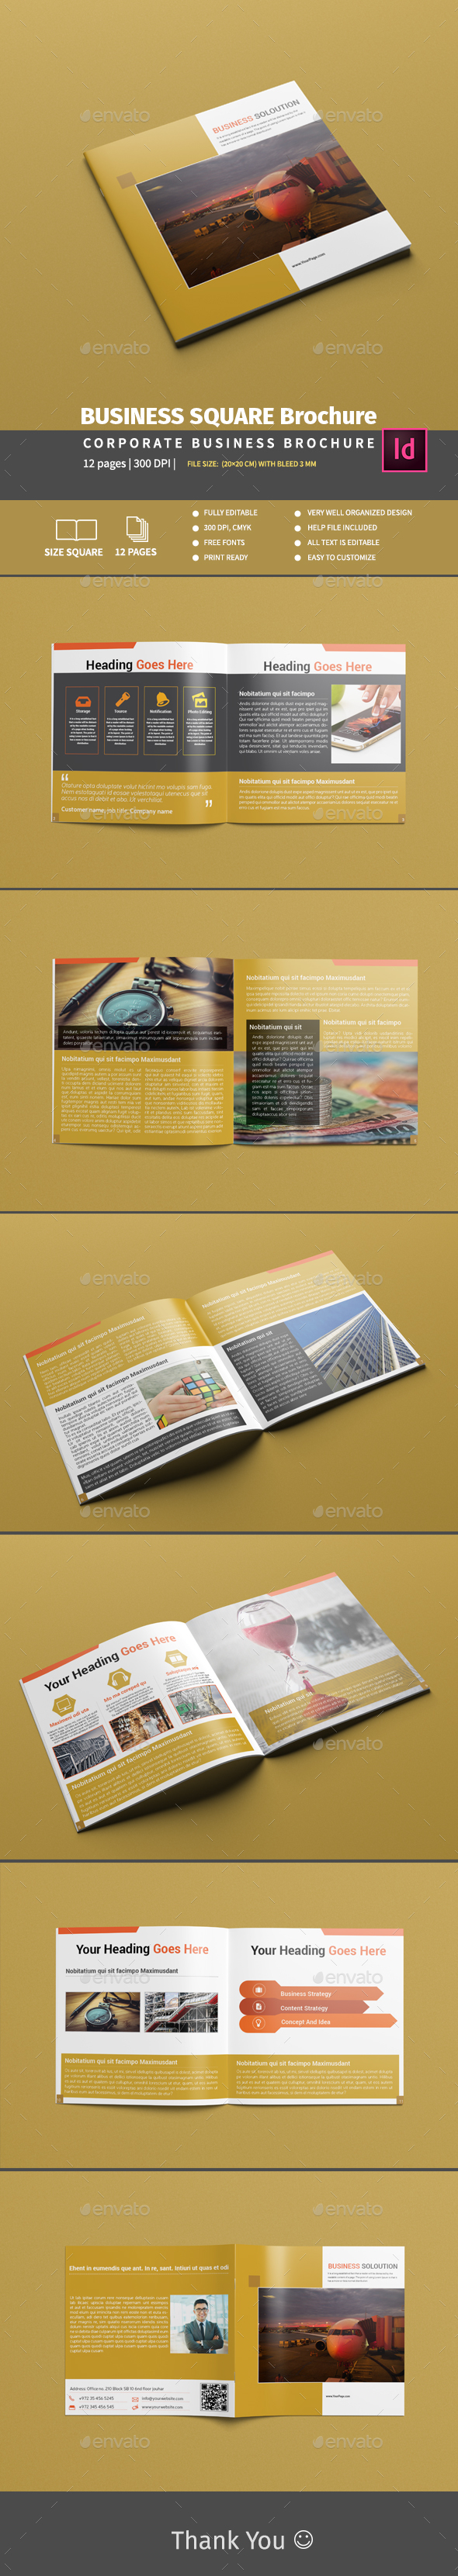 BUSINESS SQUARE Brochure - Brochures Print Templates